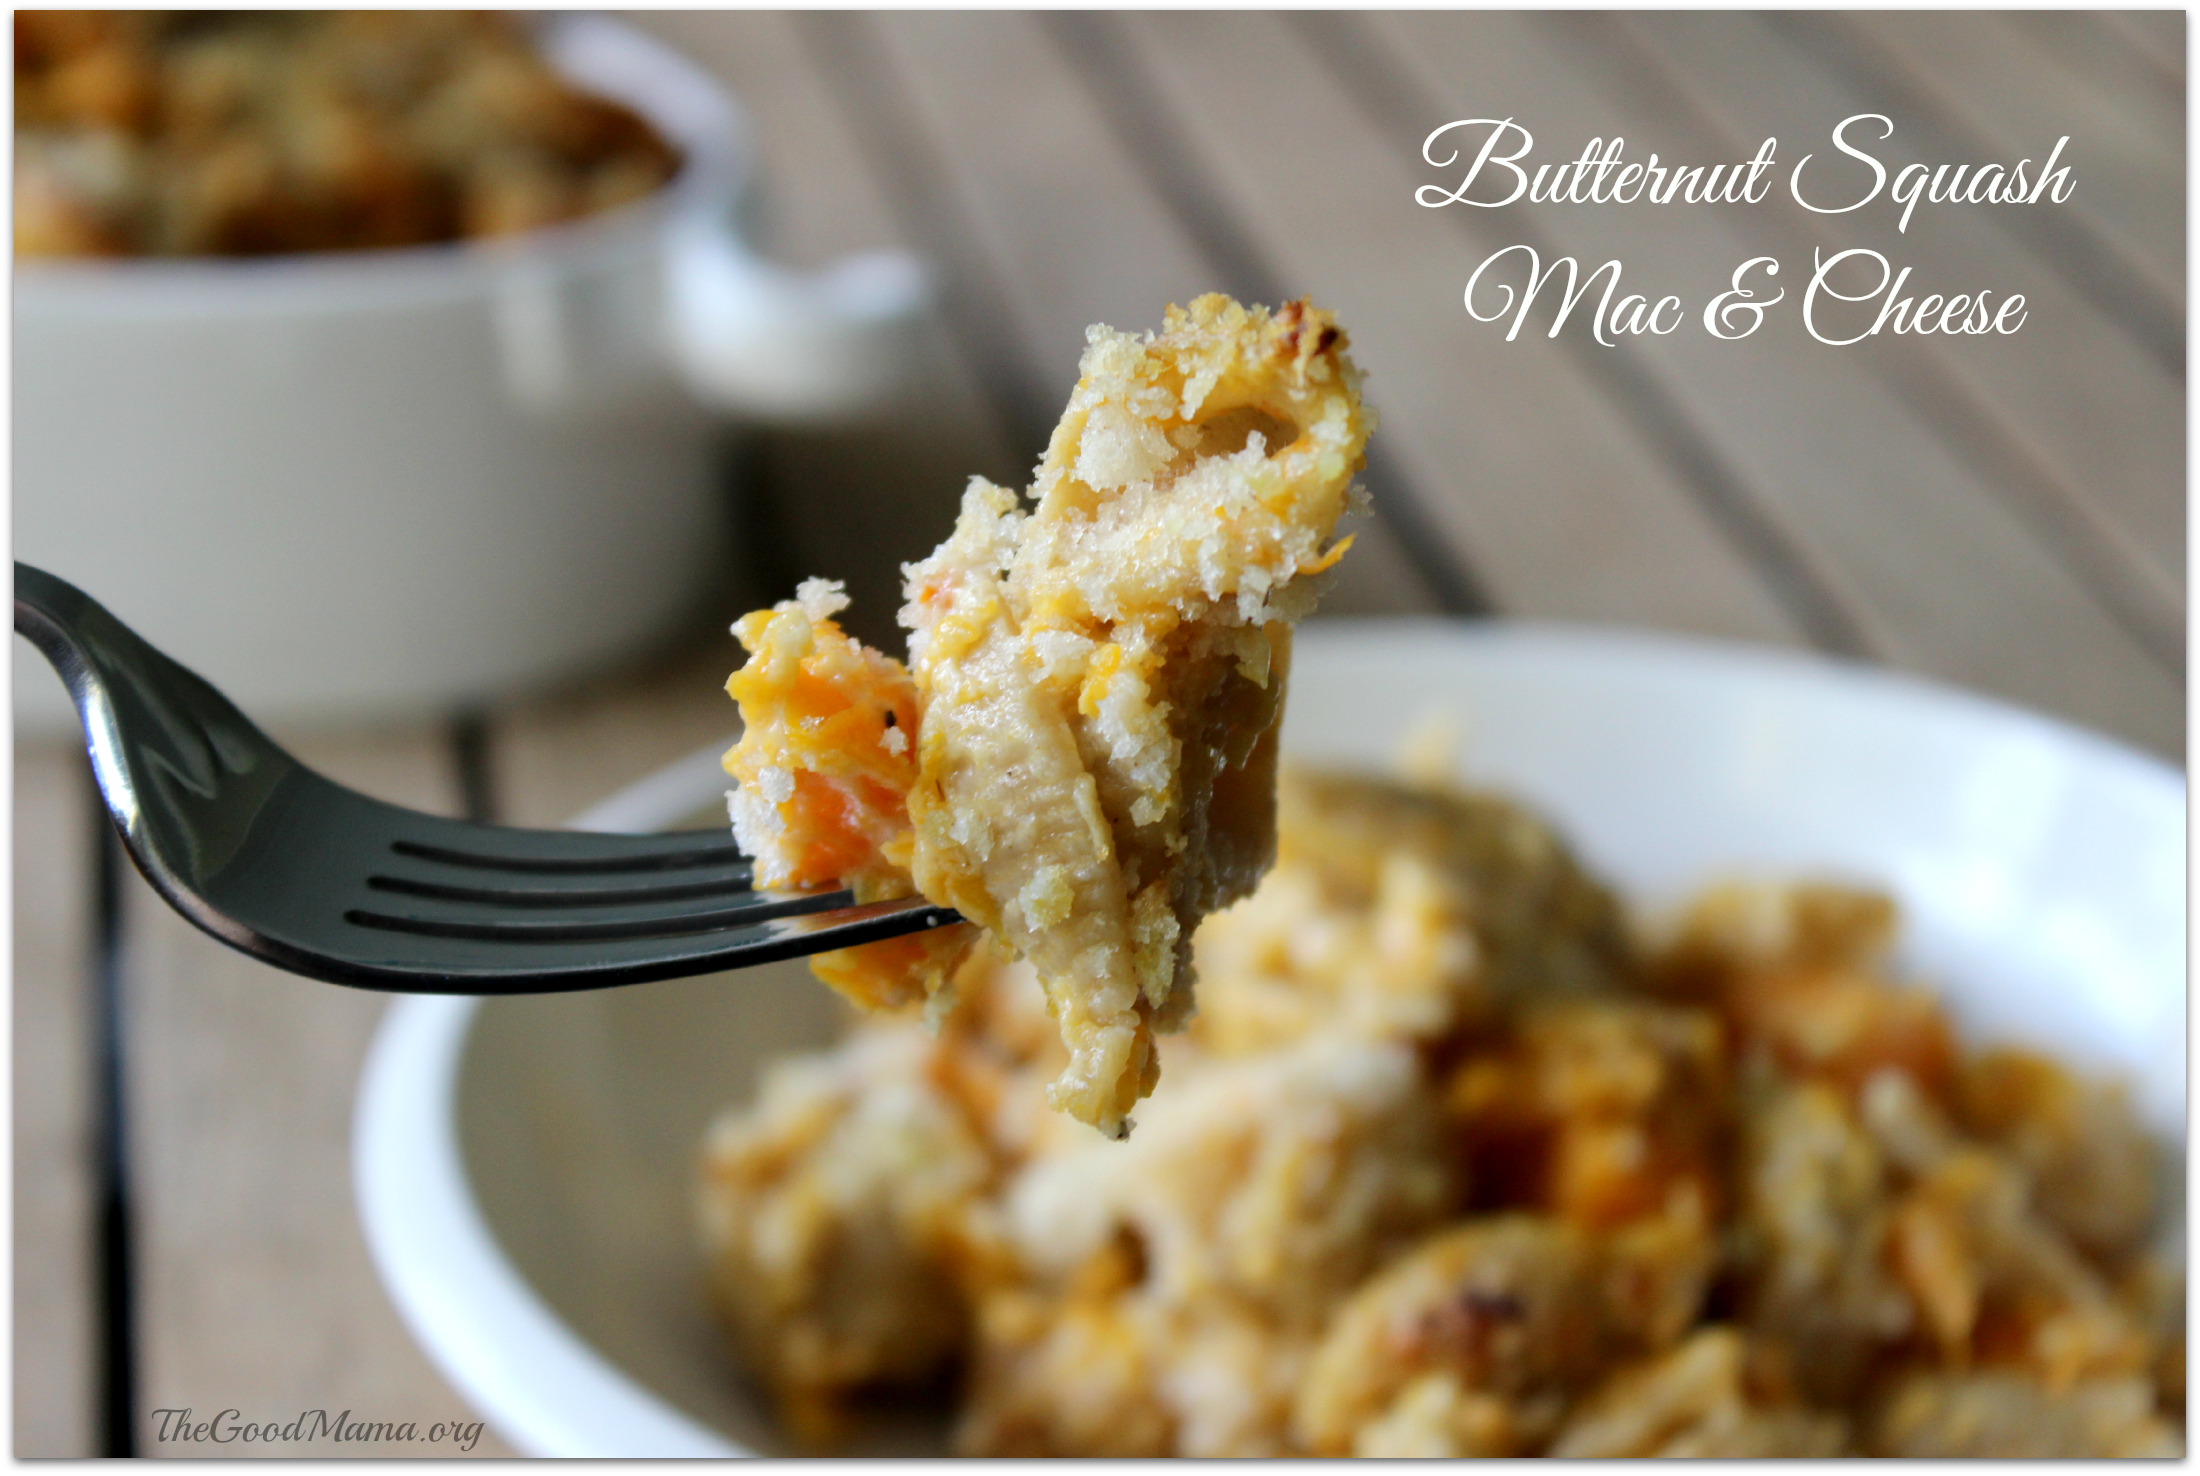 Butternut Squash Mac & Cheese Recipe